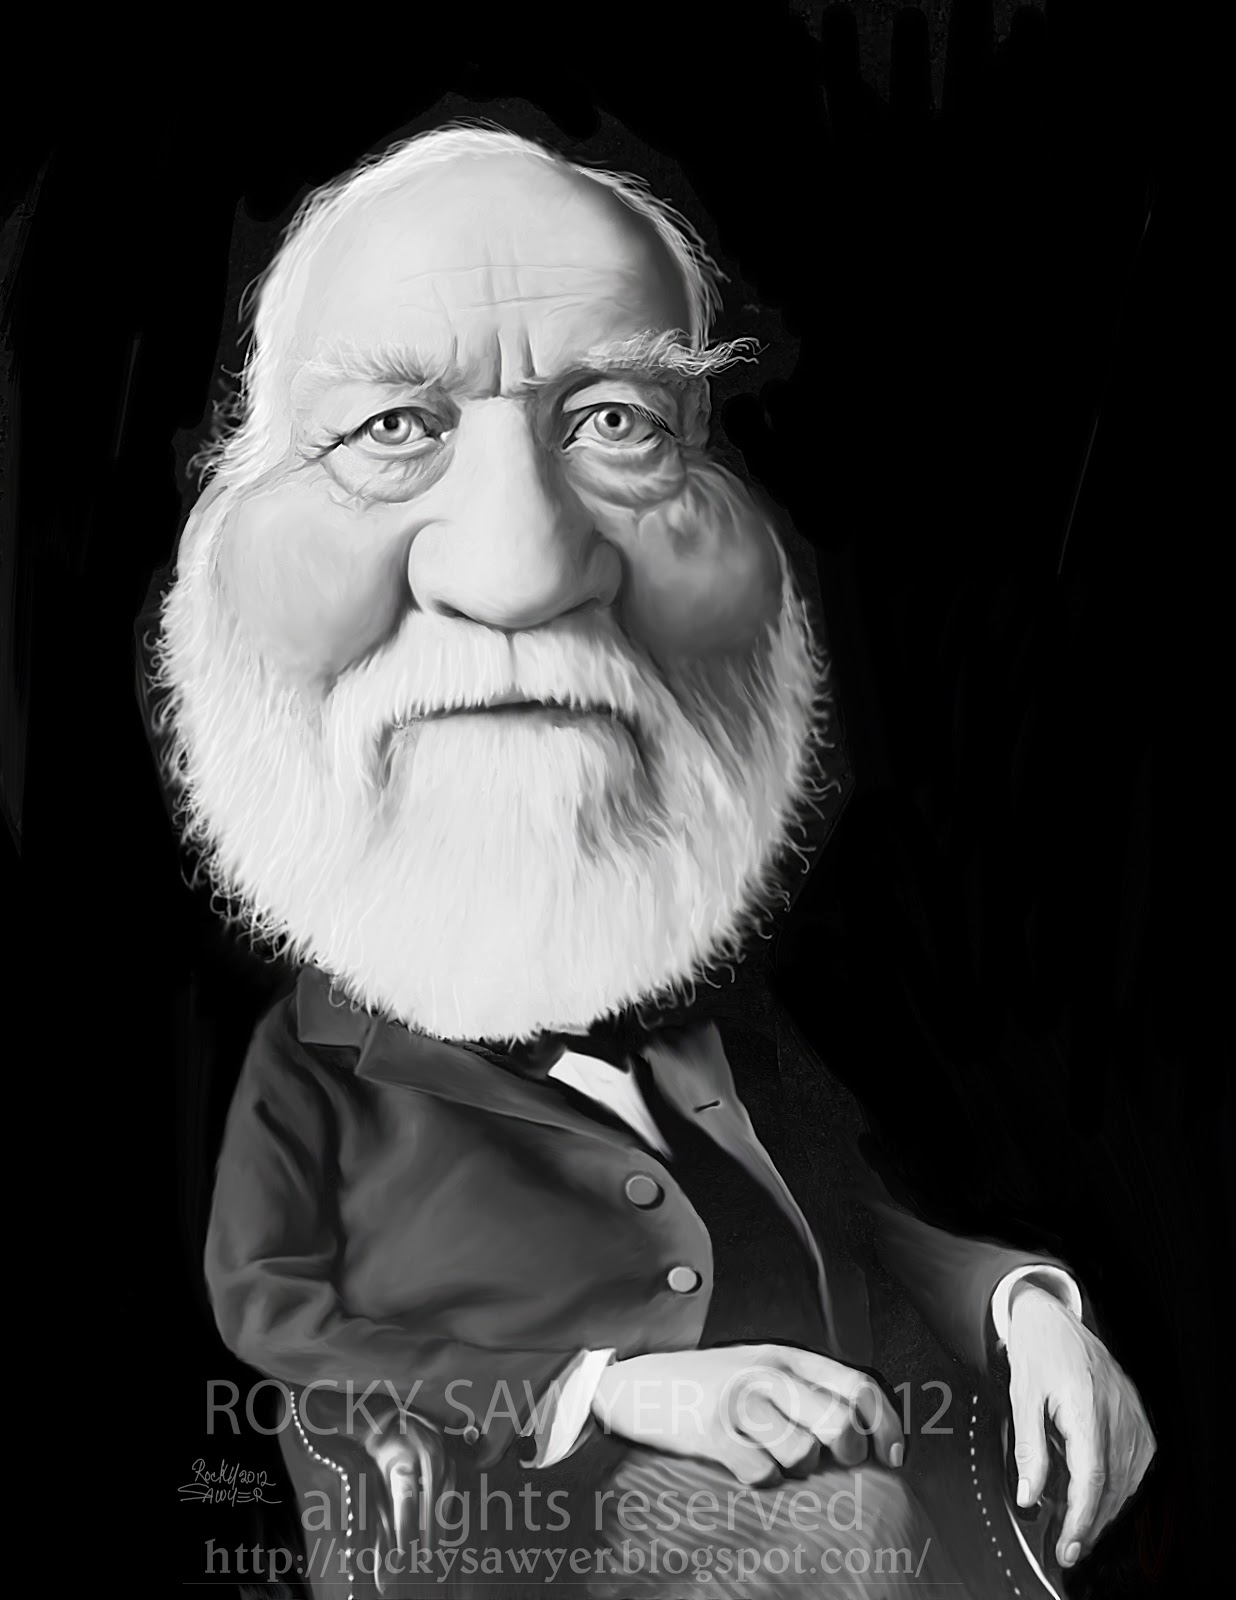 andrew carnegie View the profiles of professionals named andrew carnegie on linkedin there are 59 professionals named andrew carnegie, who use linkedin to exchange information, ideas, and opportunities.